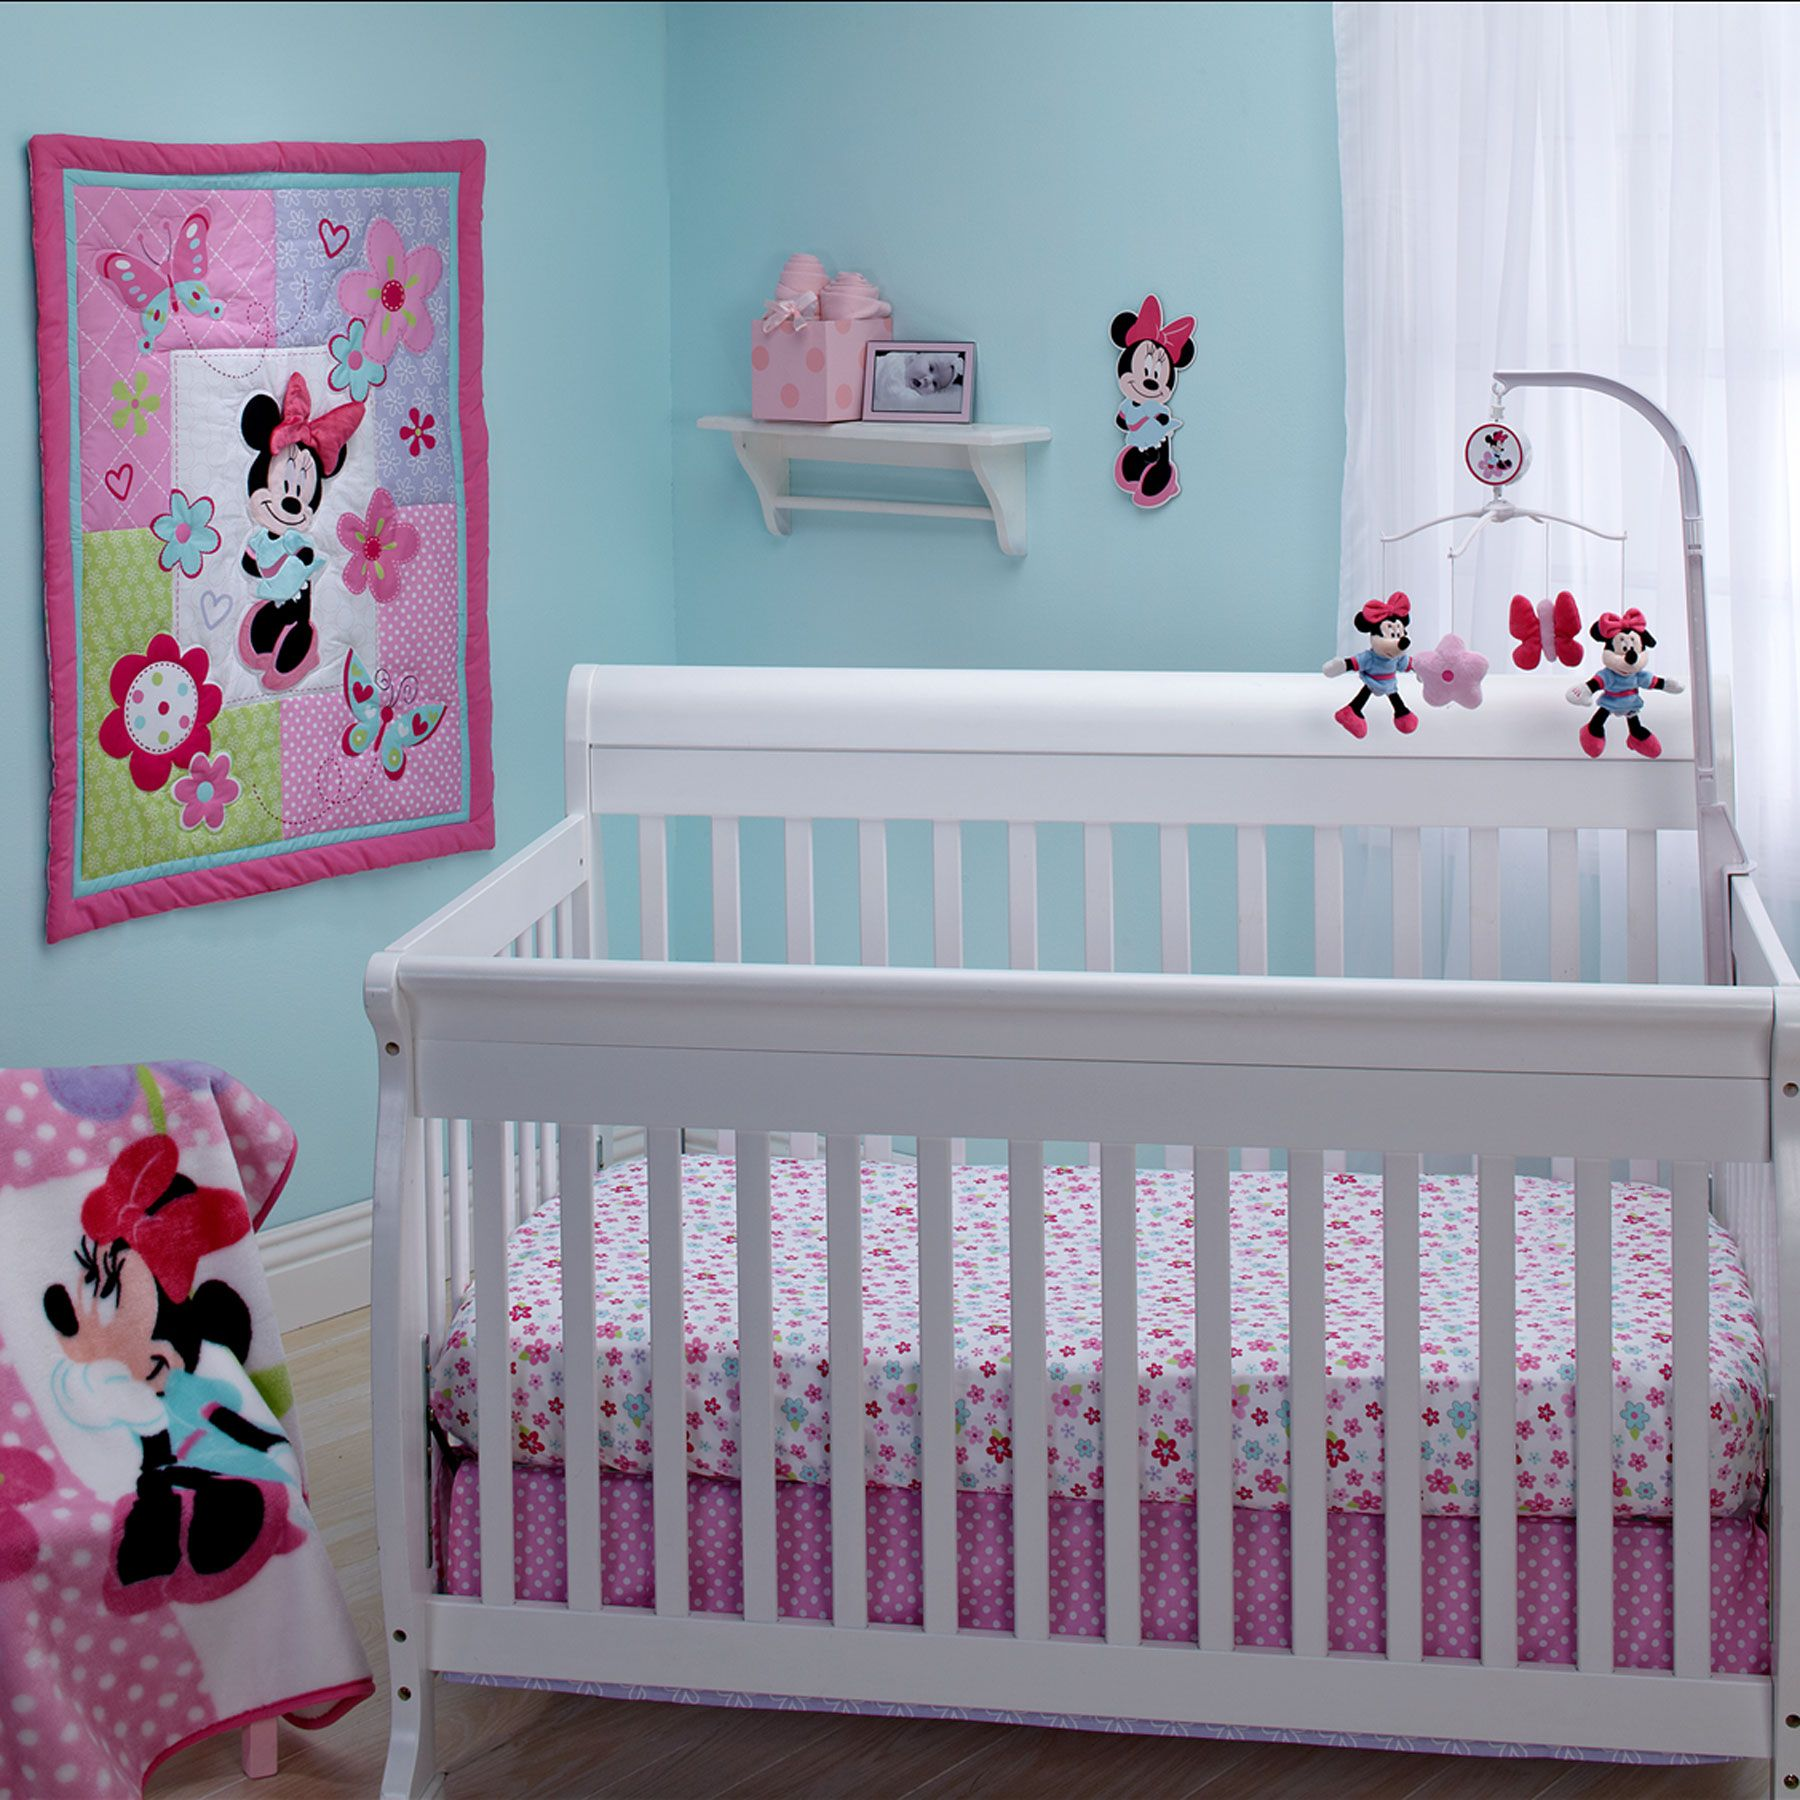 MINNIE MOUSE Simply Adorable 4-Piece Crib Bedding Set